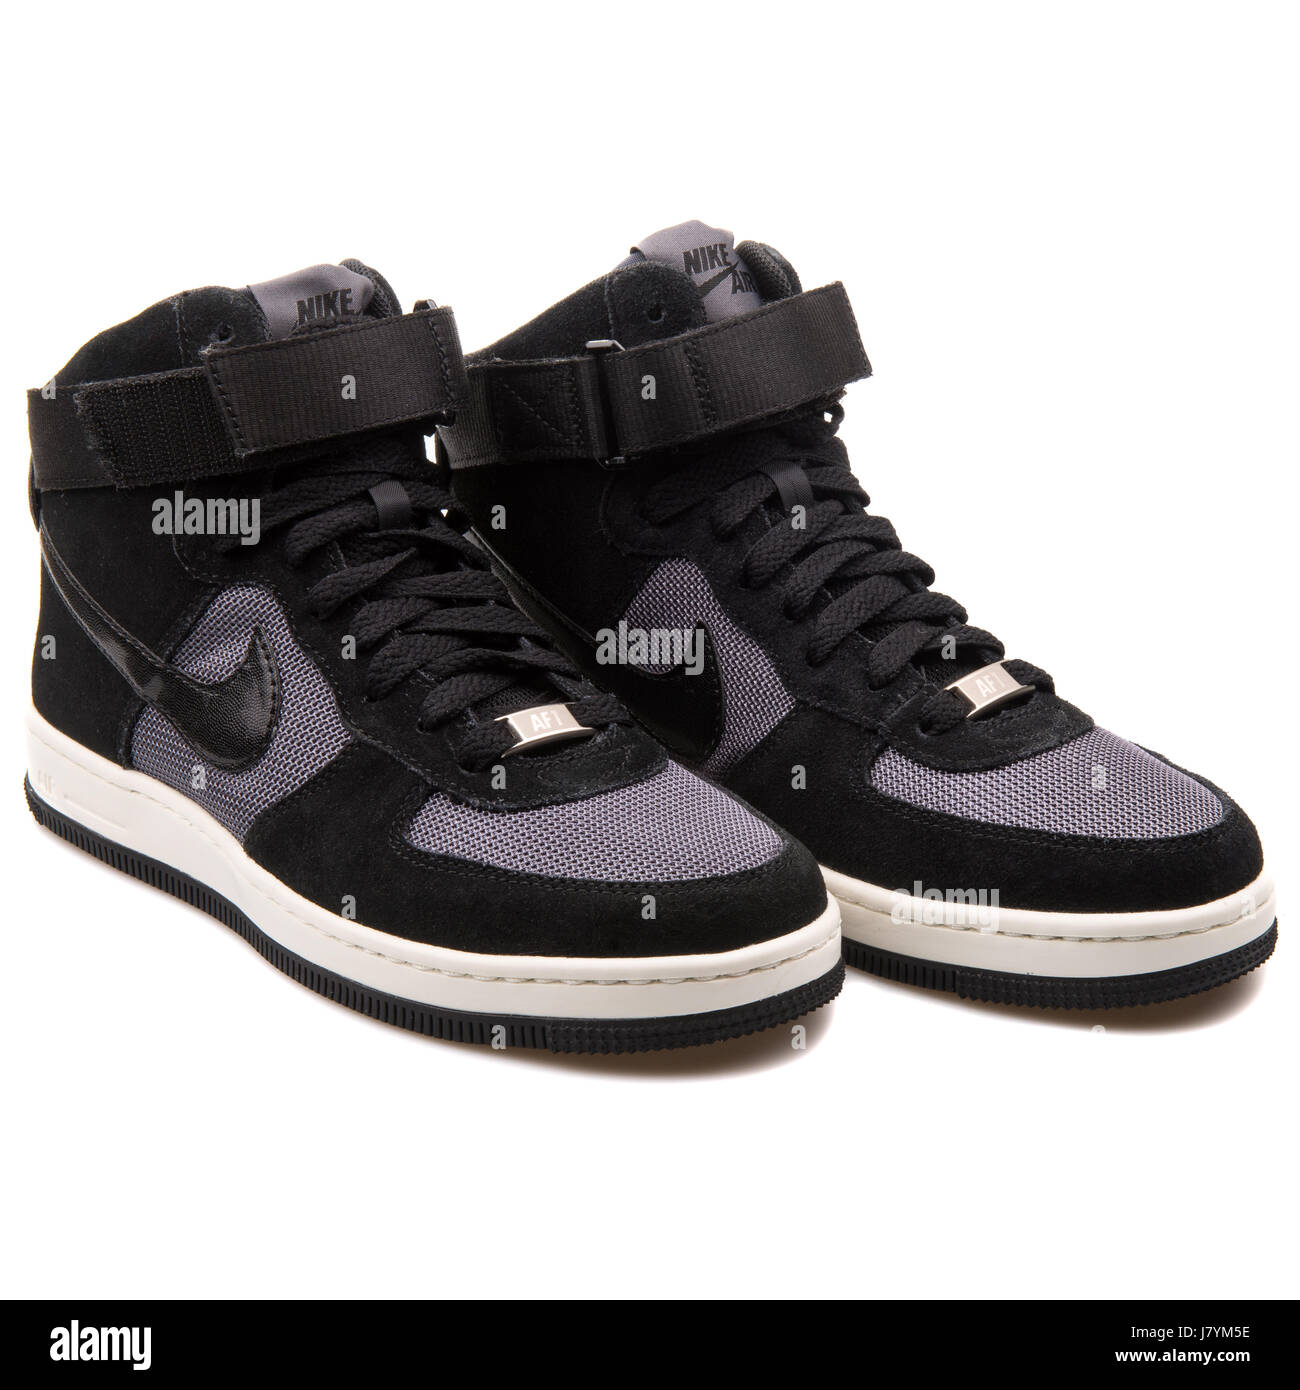 paridad Viento Adquisición  nike air force 1 negro y rojo alto top buy 71178 59118